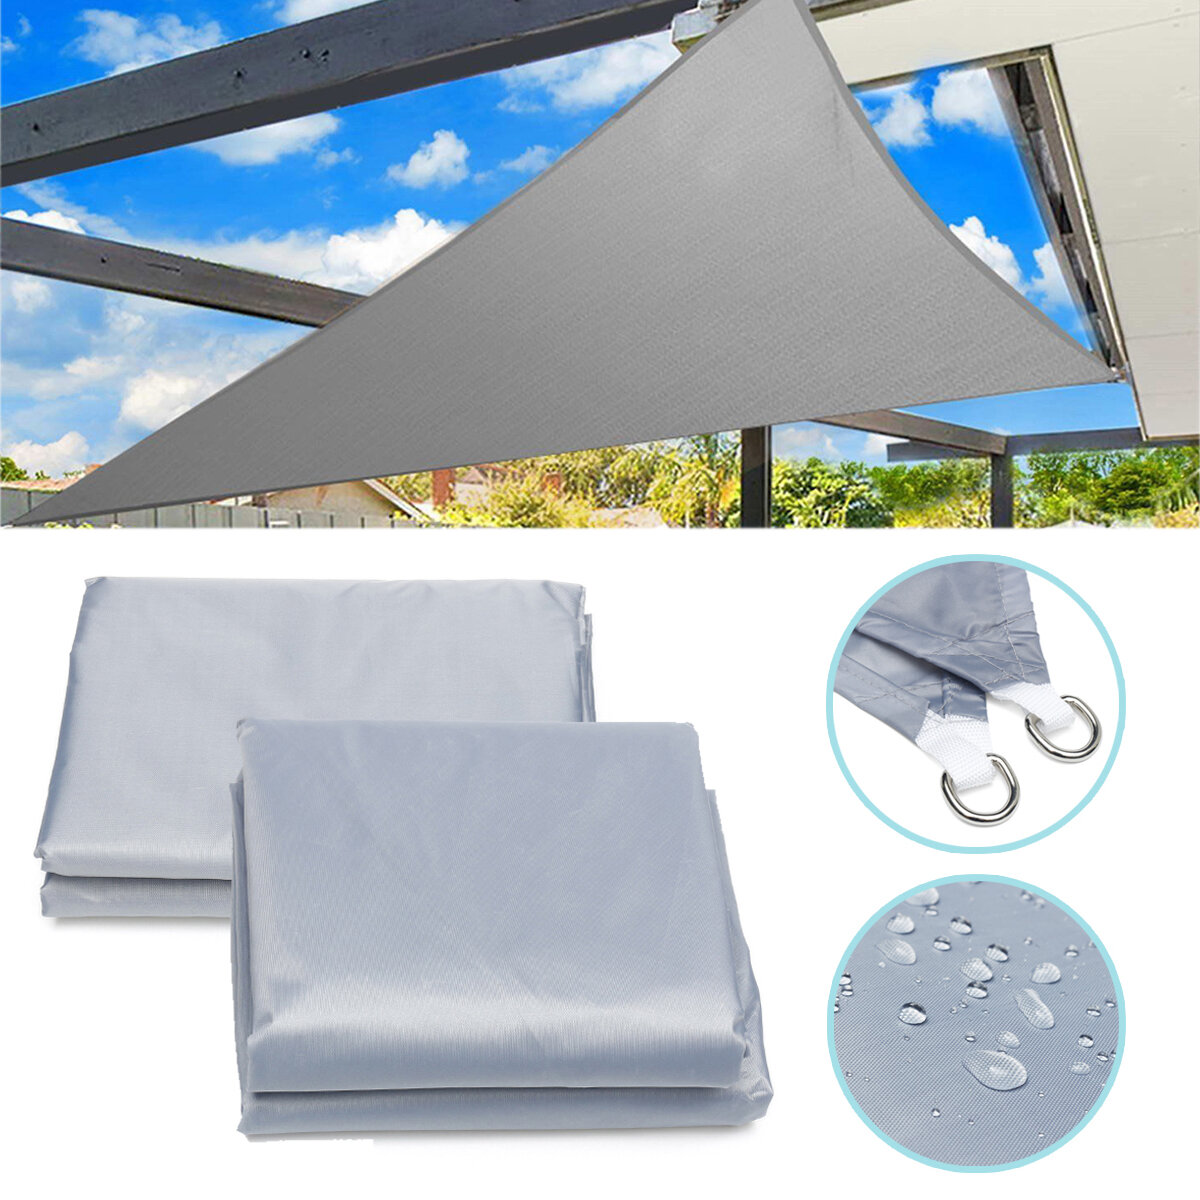 3 6m 5m Triangle Sun Shade Sail Outdoor Garden Patio Uv Proof Awning Canopy Screen Cover Cod